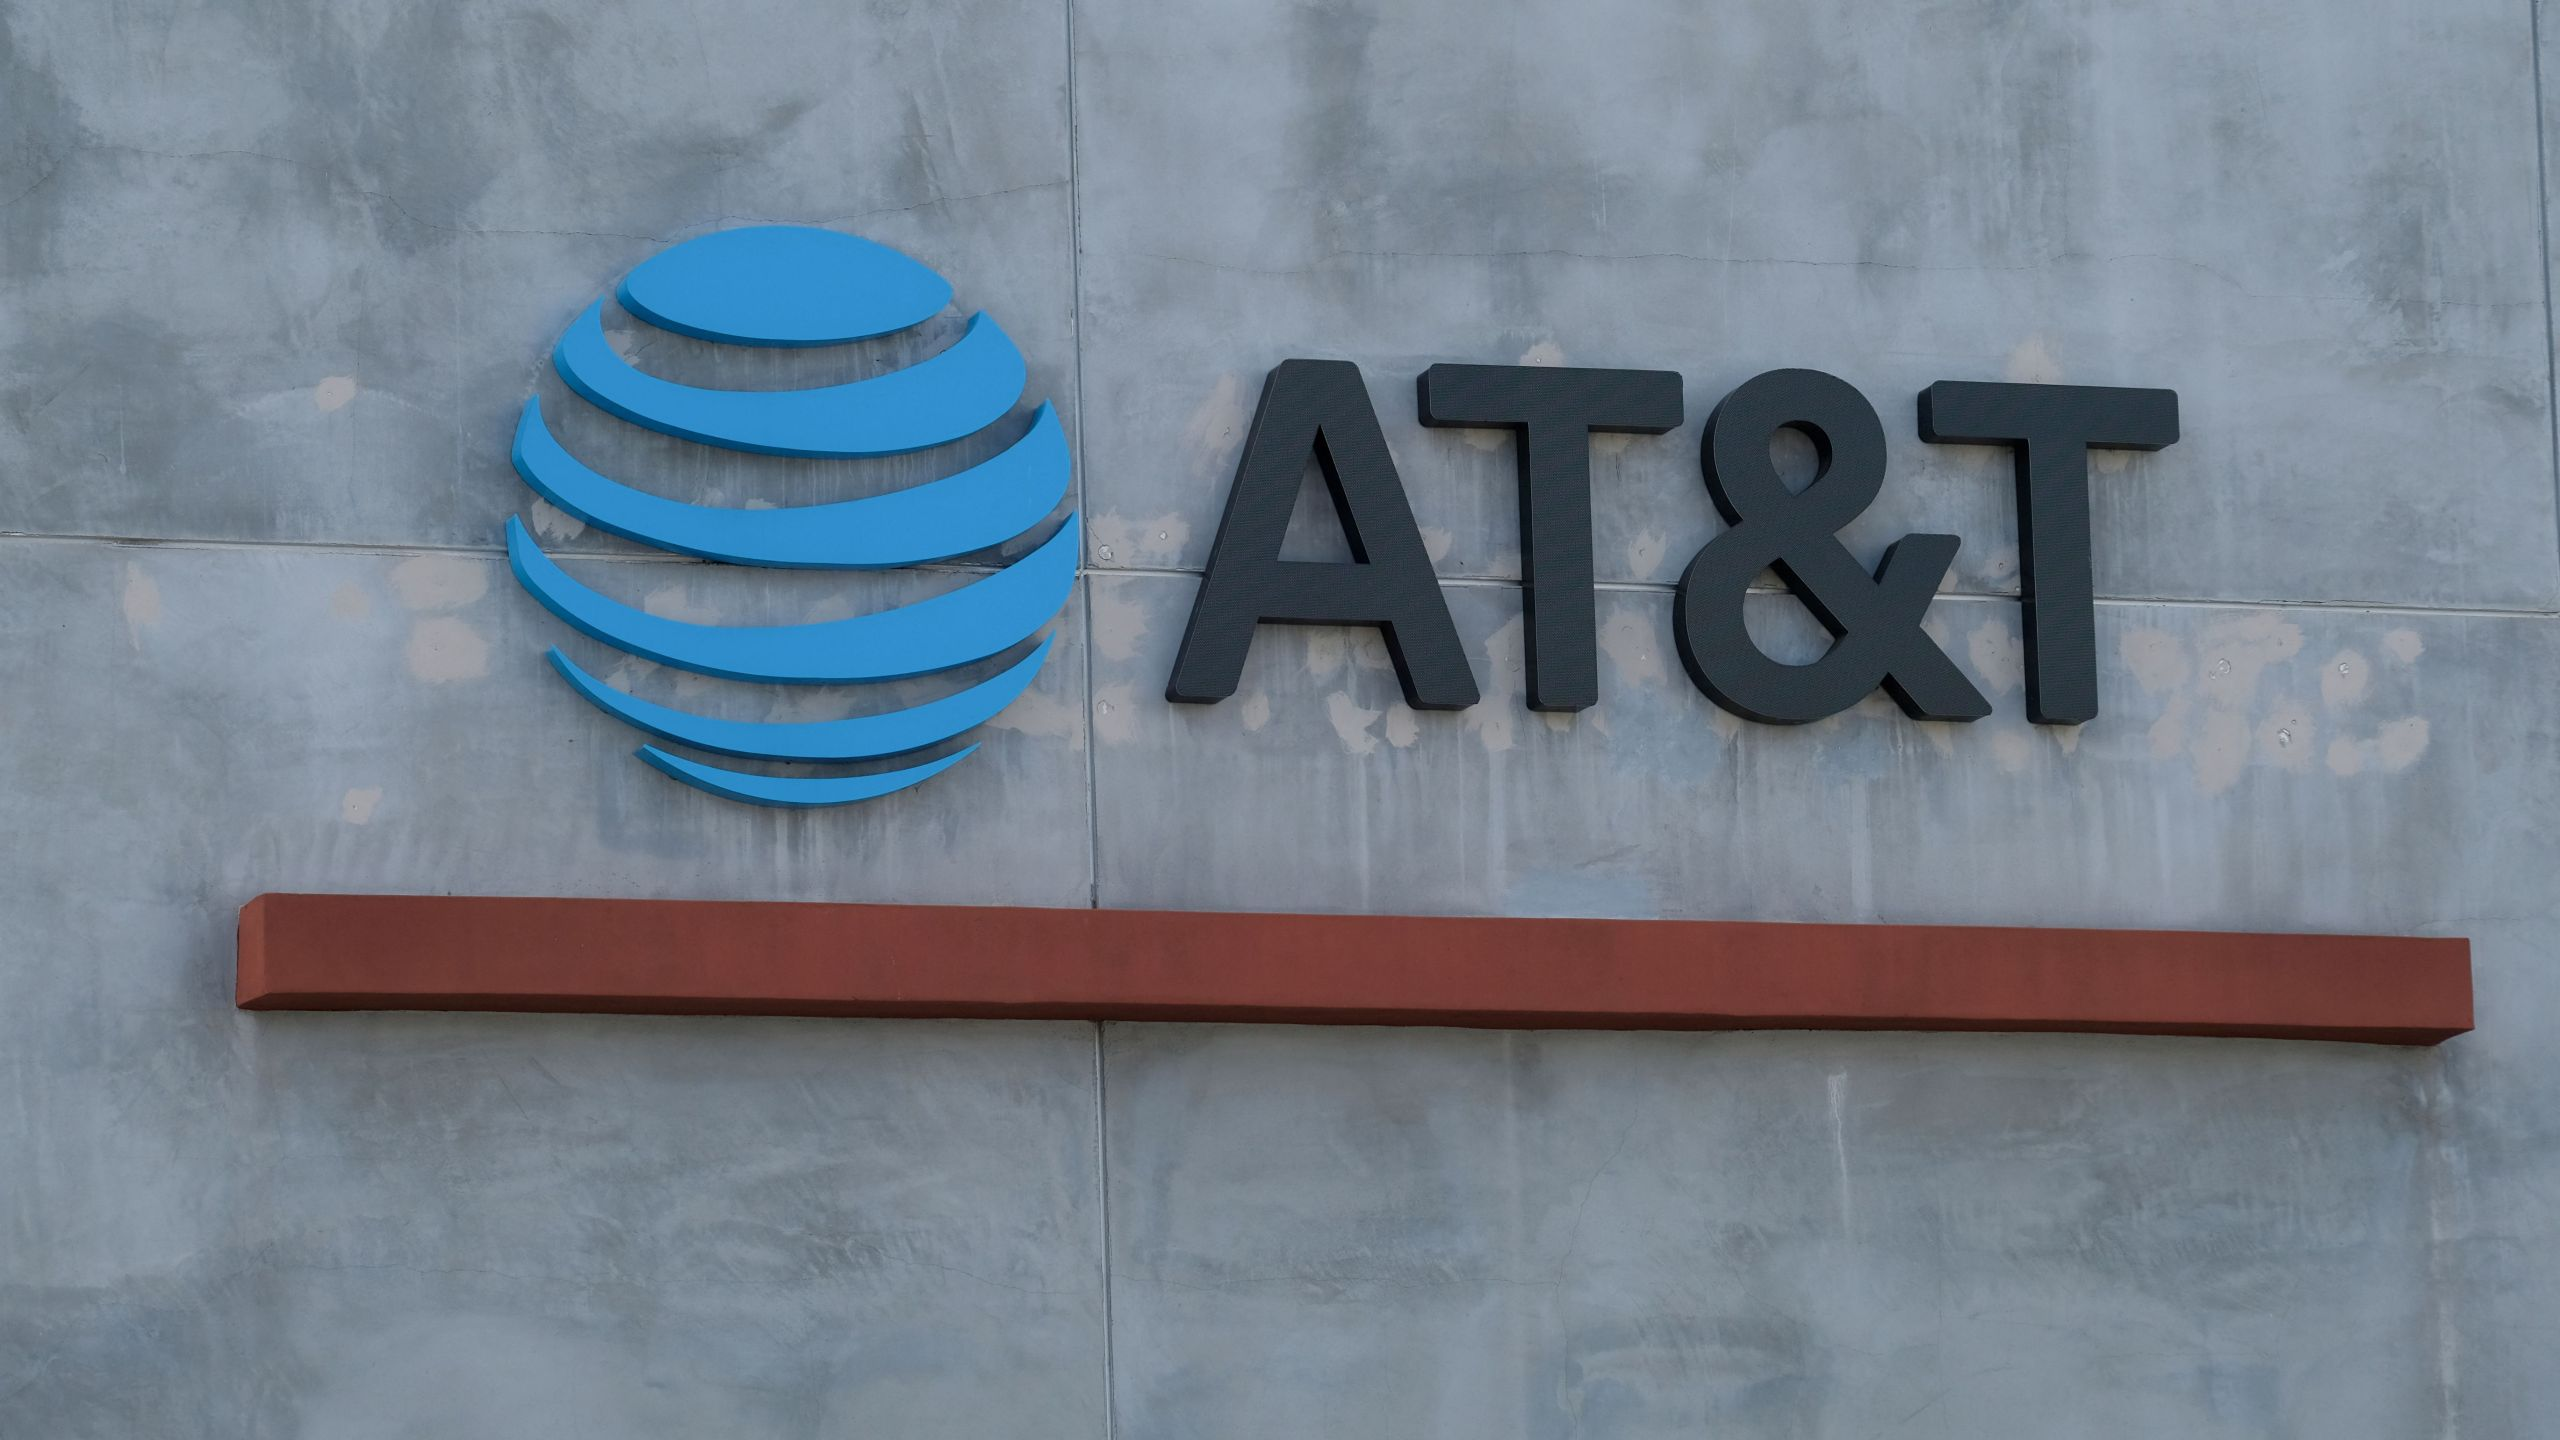 The AT&T logo sign is seen above the store in Culver City, California on January 28, 2021. - US telecommunications firm AT&T announced on May 17, 2021 a merger between its WarnerMedia unit -- which owns CNN and HBO -- and Discovery media, creating a streaming giant that could compete with Netflix and Disney+. When the deal is finalized, AT&T will receive $43 billion and AT&T's shareholders will take stock representing 71 percent of the new company, with Discovery shareholders owning 29 percent. (Photo by Chris DELMAS / AFP) (Photo by CHRIS DELMAS/AFP via Getty Images)